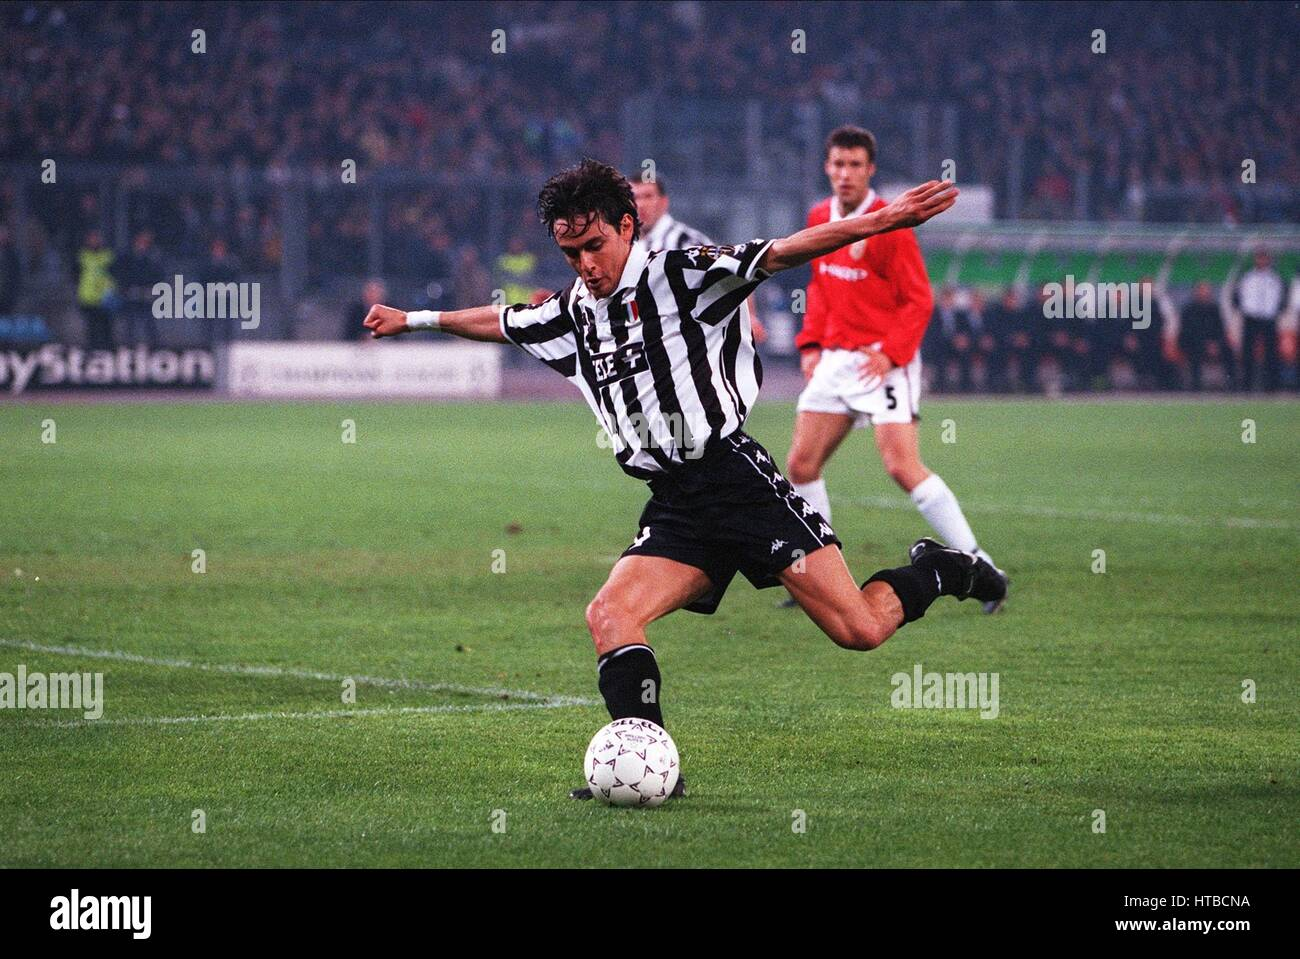 7bd8ea539 Filippo Inzaghi Stock Photos   Filippo Inzaghi Stock Images - Alamy